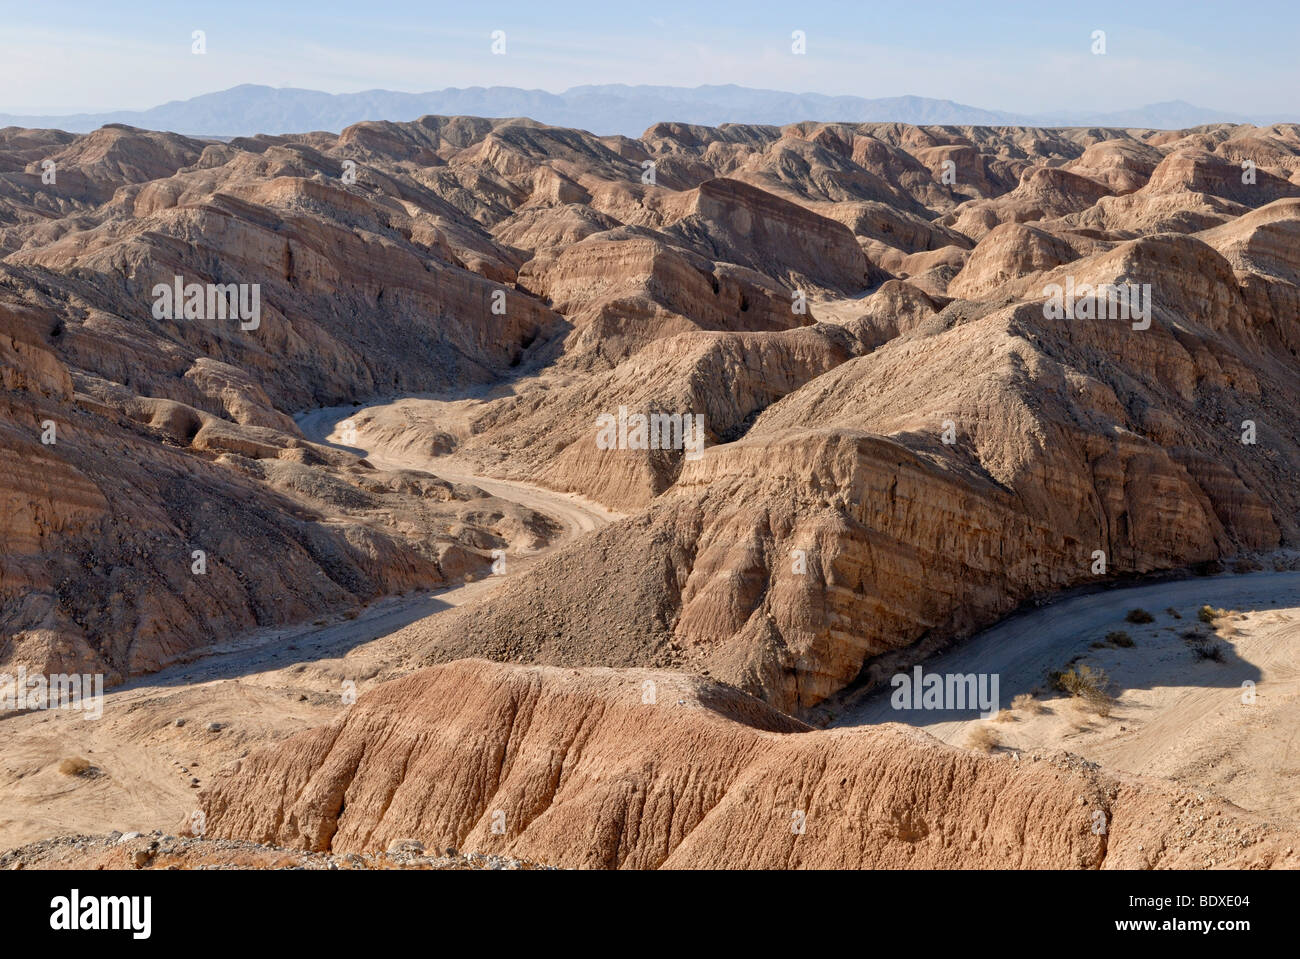 Rocky landscape with canyon and river bed, Anza Borrego Desert at the S 22, Borrego Springs, Southern California, - Stock Image